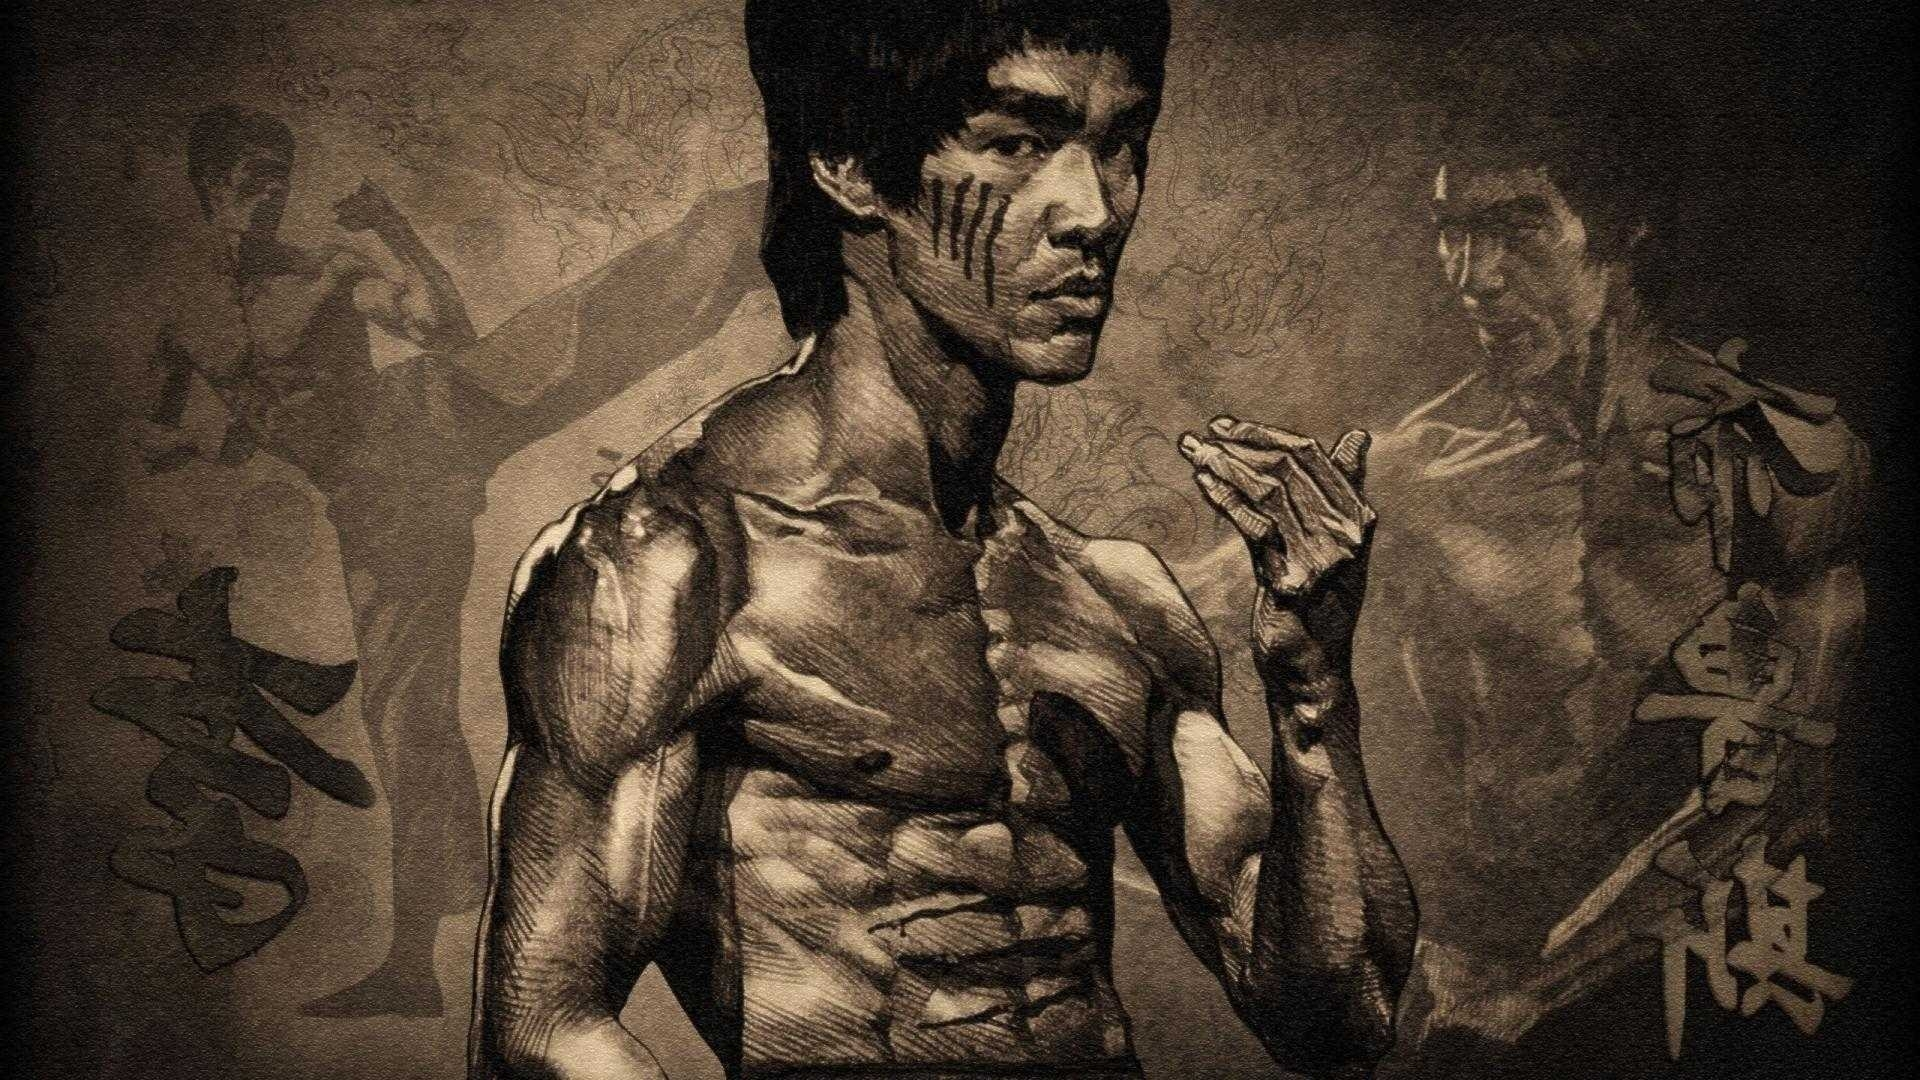 high quality for bruce lee wallpaper resolution desktop | wallvie